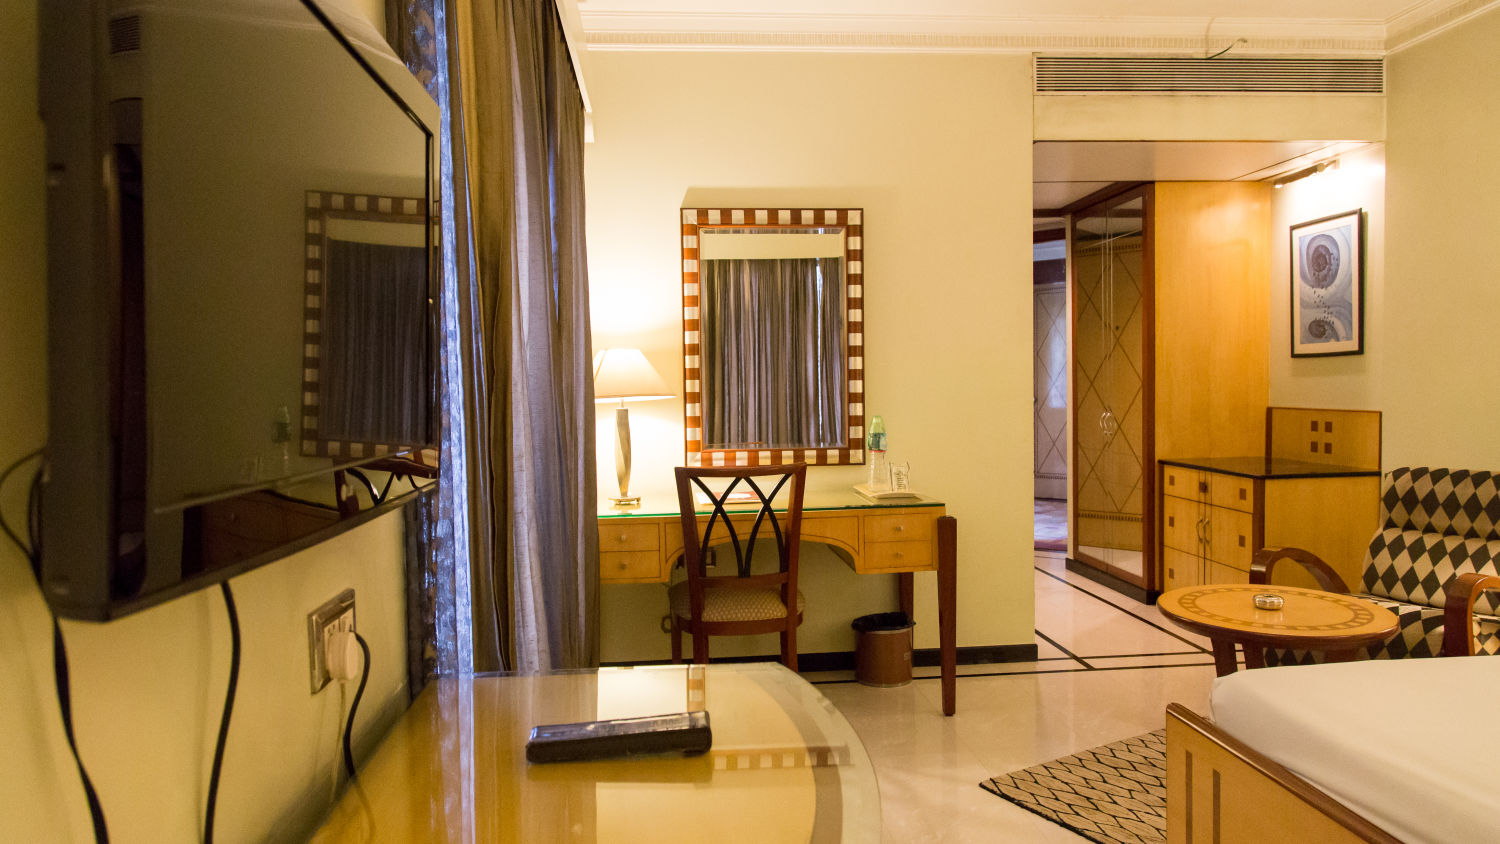 Rooms in Ahmedabad, Ahmedabad Hotel Rooms, Hotel Sarovar Ahmedabad